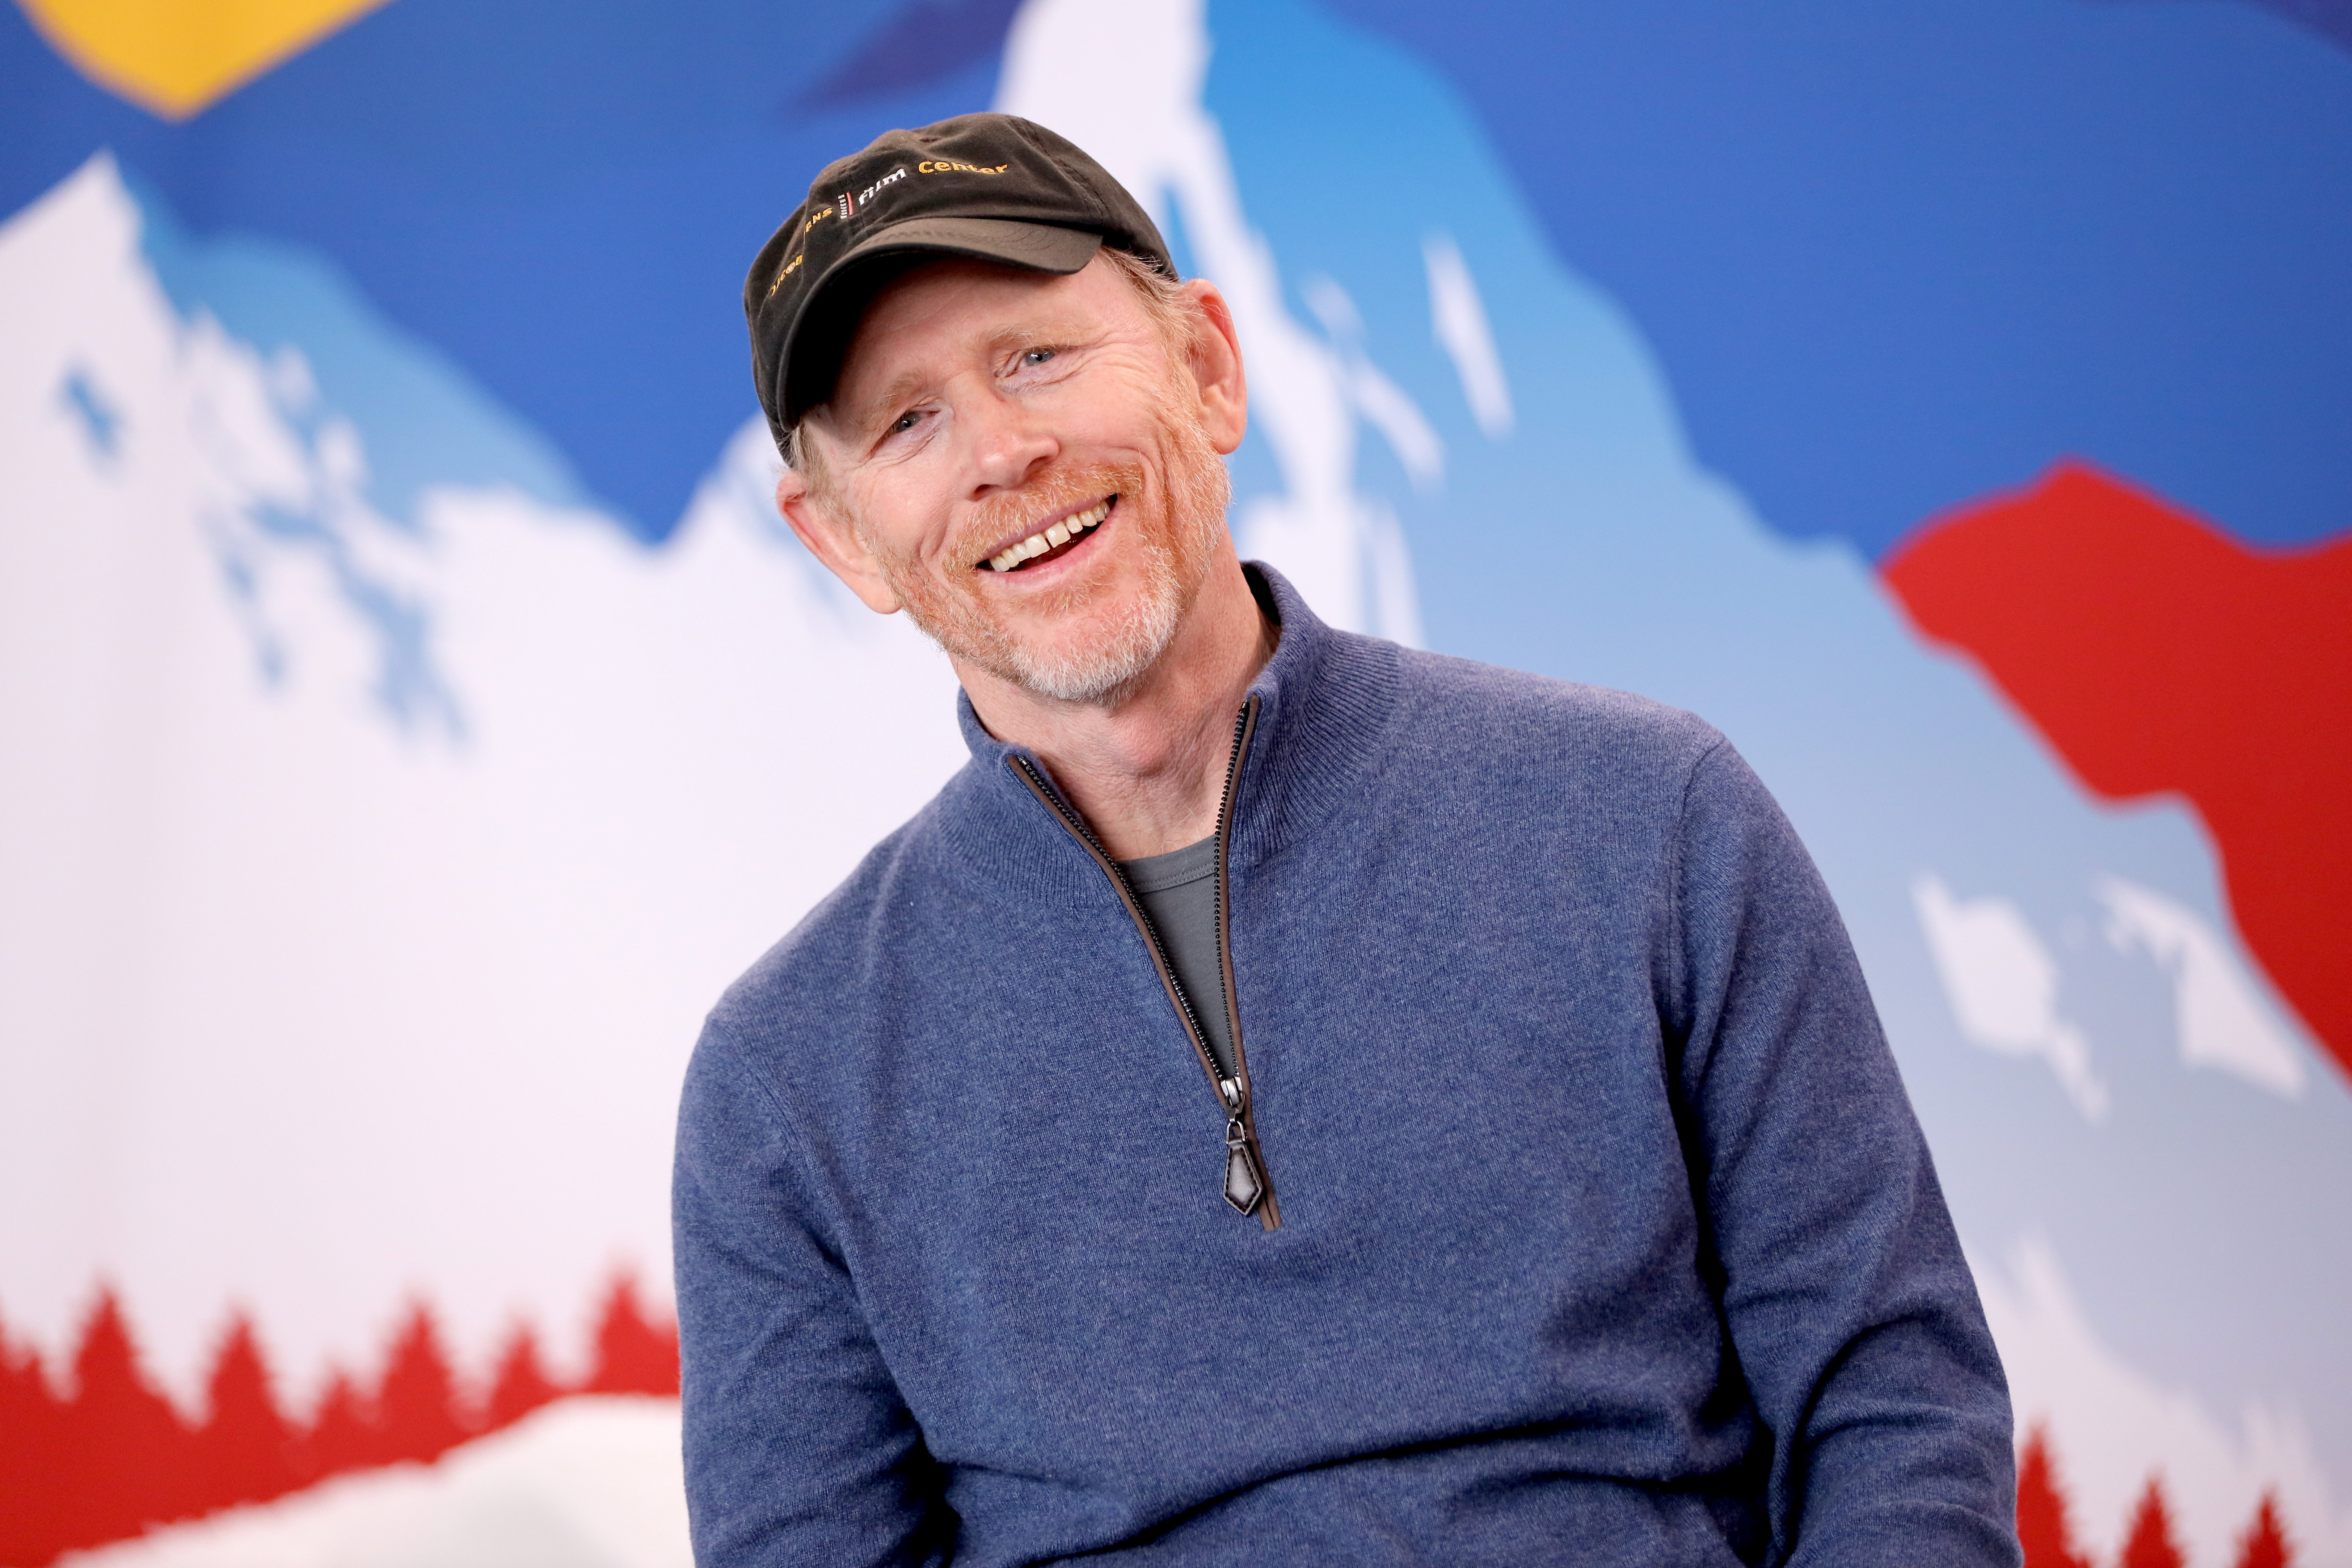 Ron Howard of 'Rebuilding Paradise' attends the IMDb Studio at Acura Festival Village on location at the 2020 Sundance Film Festival on January 24, 2020 in Park City, Utah   Photo: Getty Images